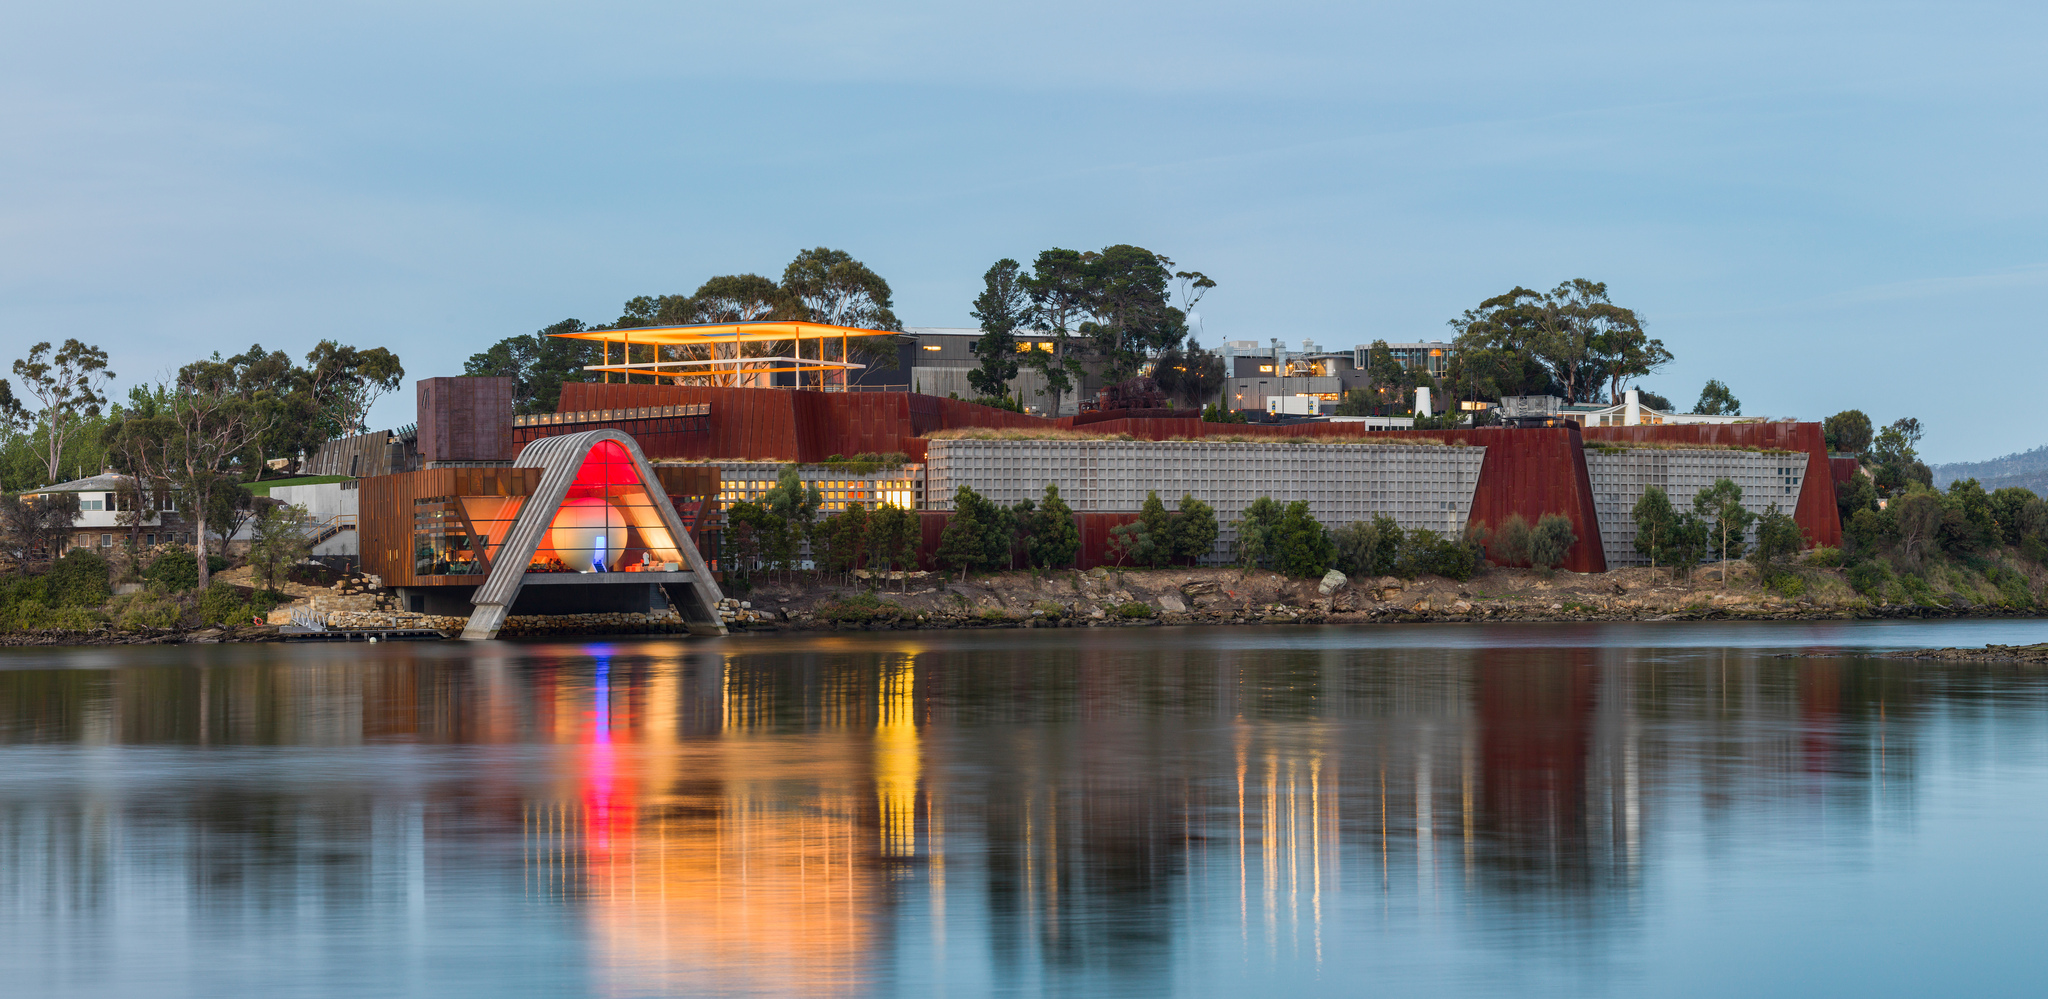 Museum of Old and New Art | Hobart, Tasmania